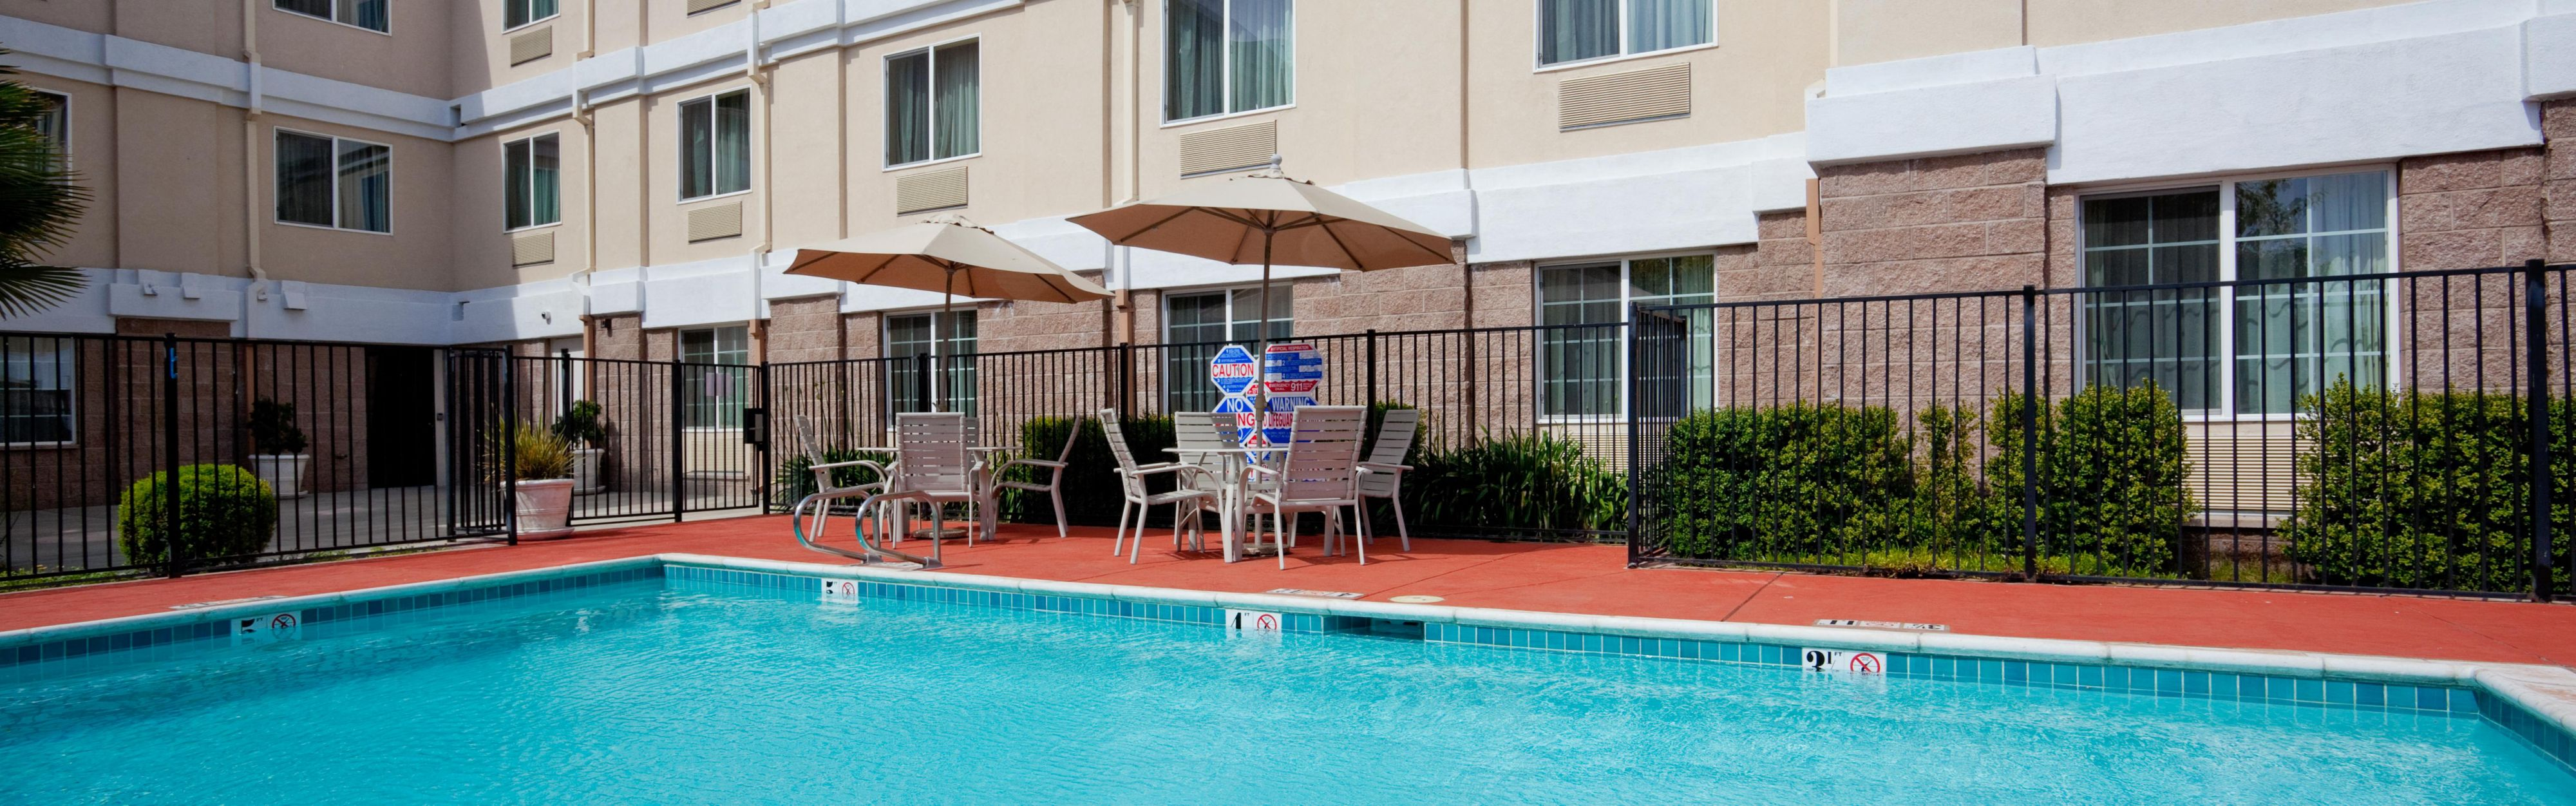 Holiday Inn Express & Suites Livermore image 2